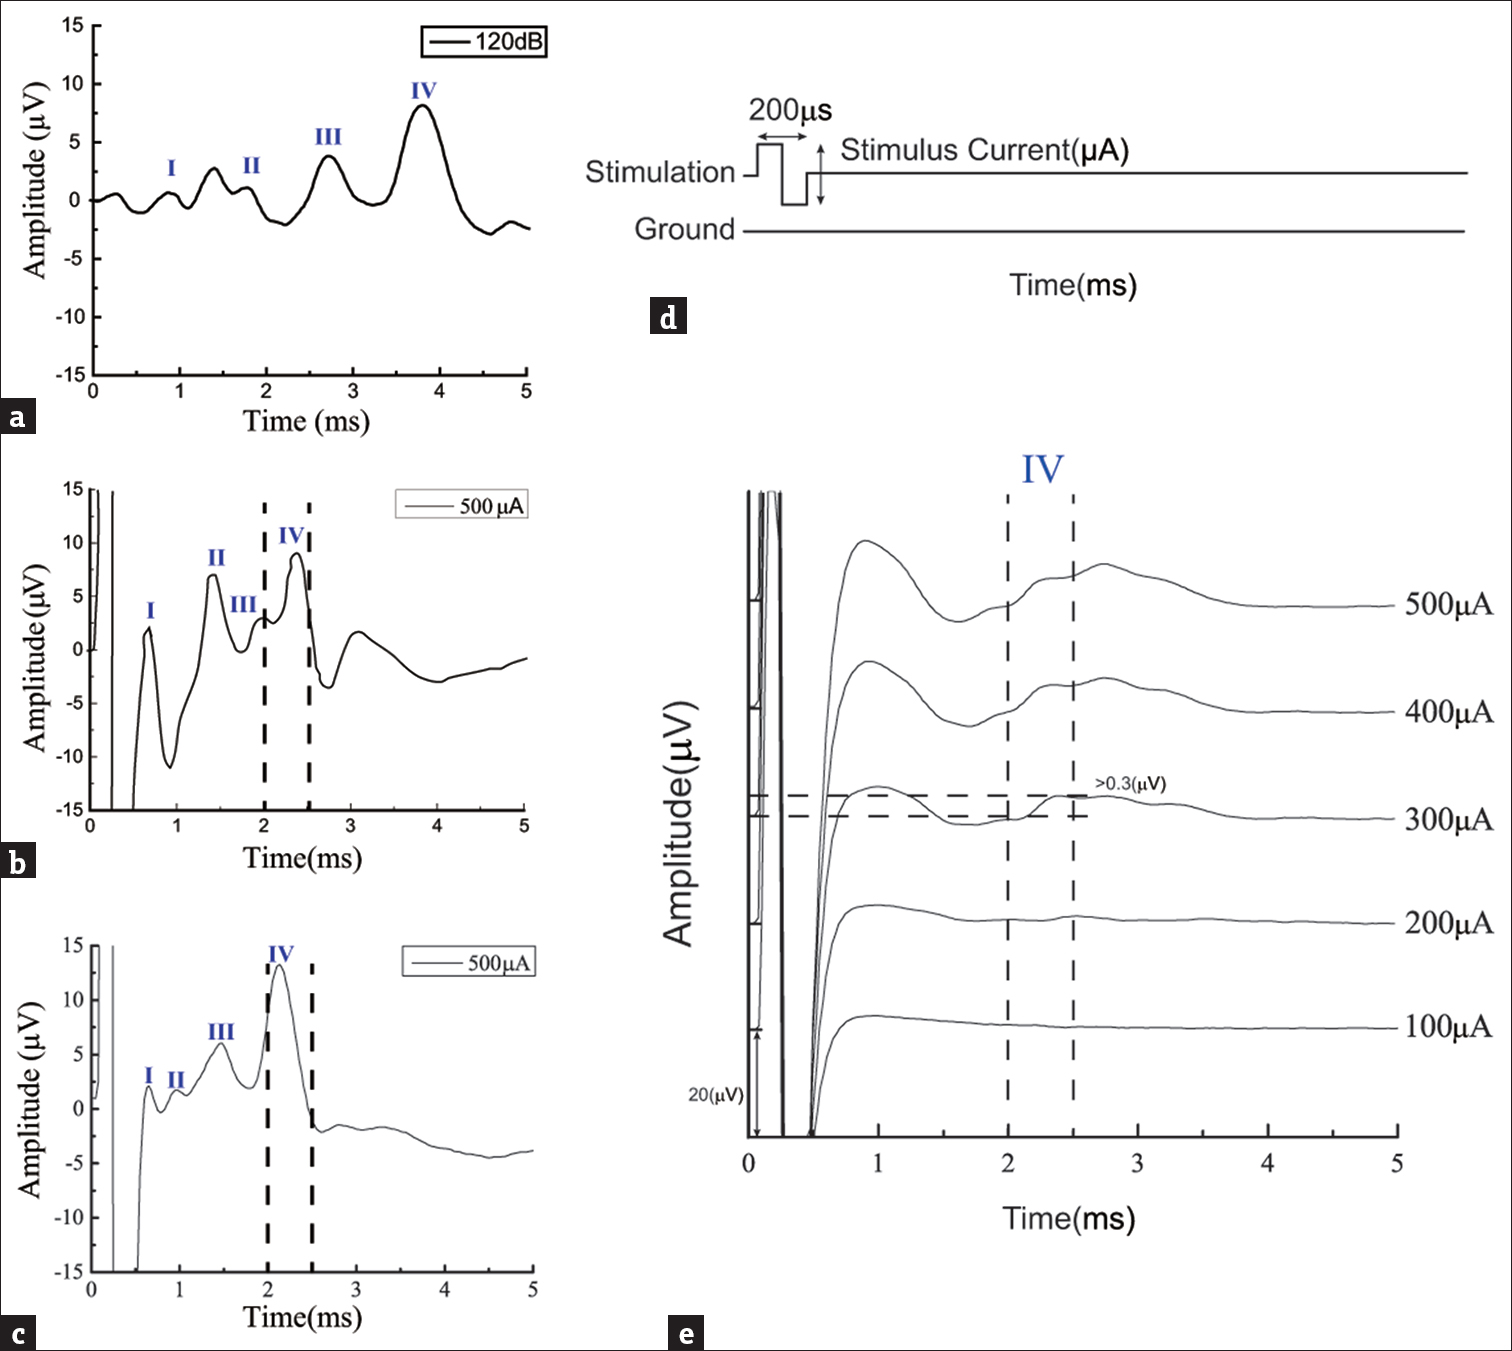 Figure 4: (a) Evoked acoustic auditory brainstem response signals with 120 dB SPL. The evoked waveforms I to IV indicated that the tested animal had a regular auditory ability; (b) received electrical auditory brainstem response signals intracochlear stimulation current of 500 μA, as shown in (a); (c) received electrical auditory brainstem response signals following extracochlear stimulation with a current of 500 μA, as shown in (c); (d) biphasic waveform of the stimulation current with a period of 200 μs and a tunable amplitude, and; (e) evoked electrical auditory brainstem response signals at different stimulation currents ranging from 100 to 500 μA for the determination of the threshold currents